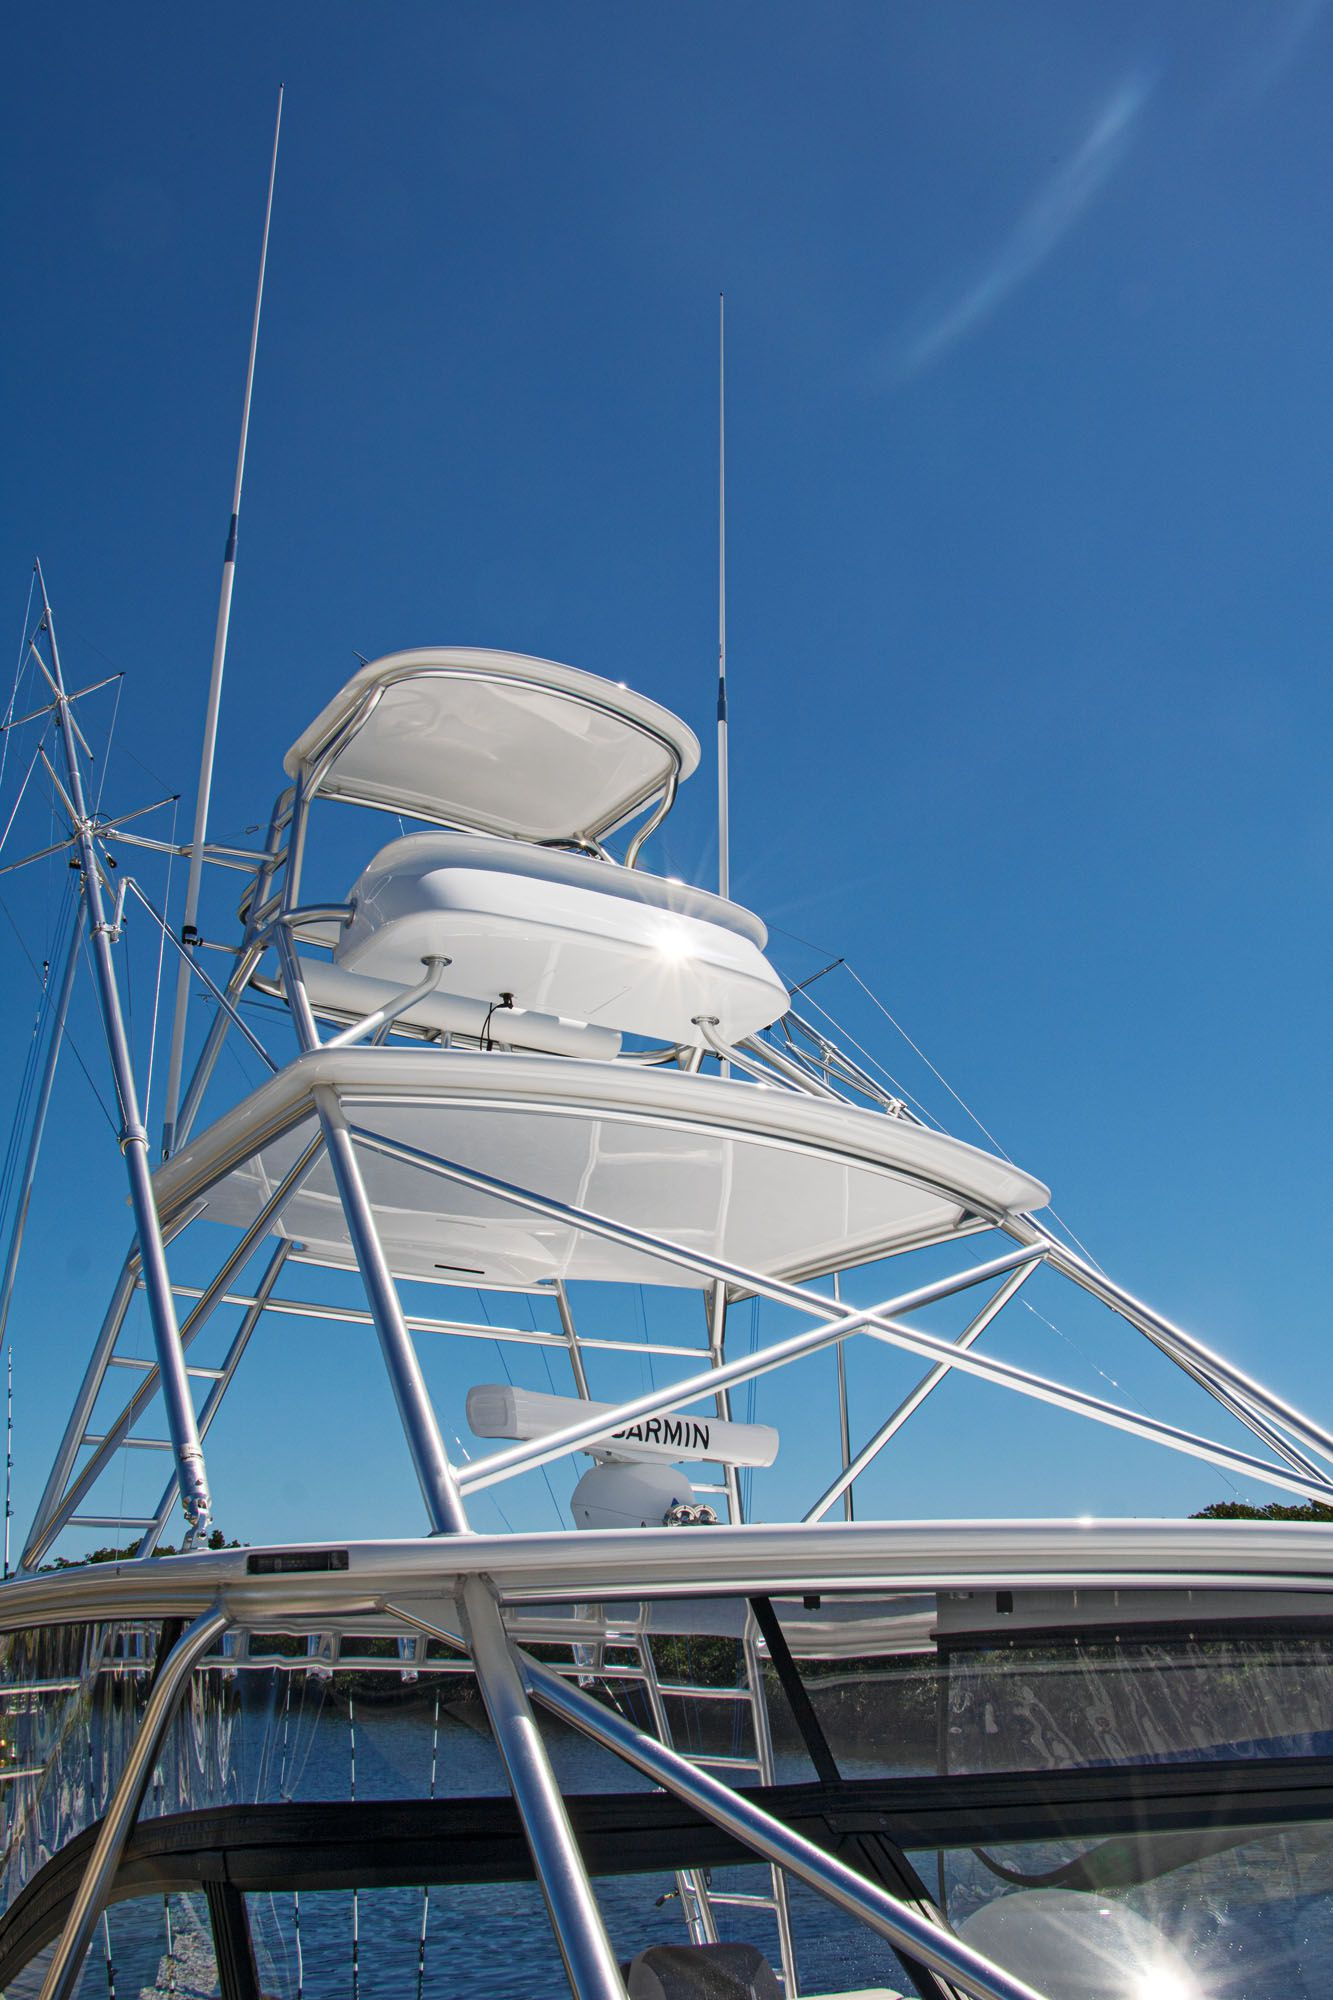 The full-tower option includes a pair of Rupp aluminum outriggers.